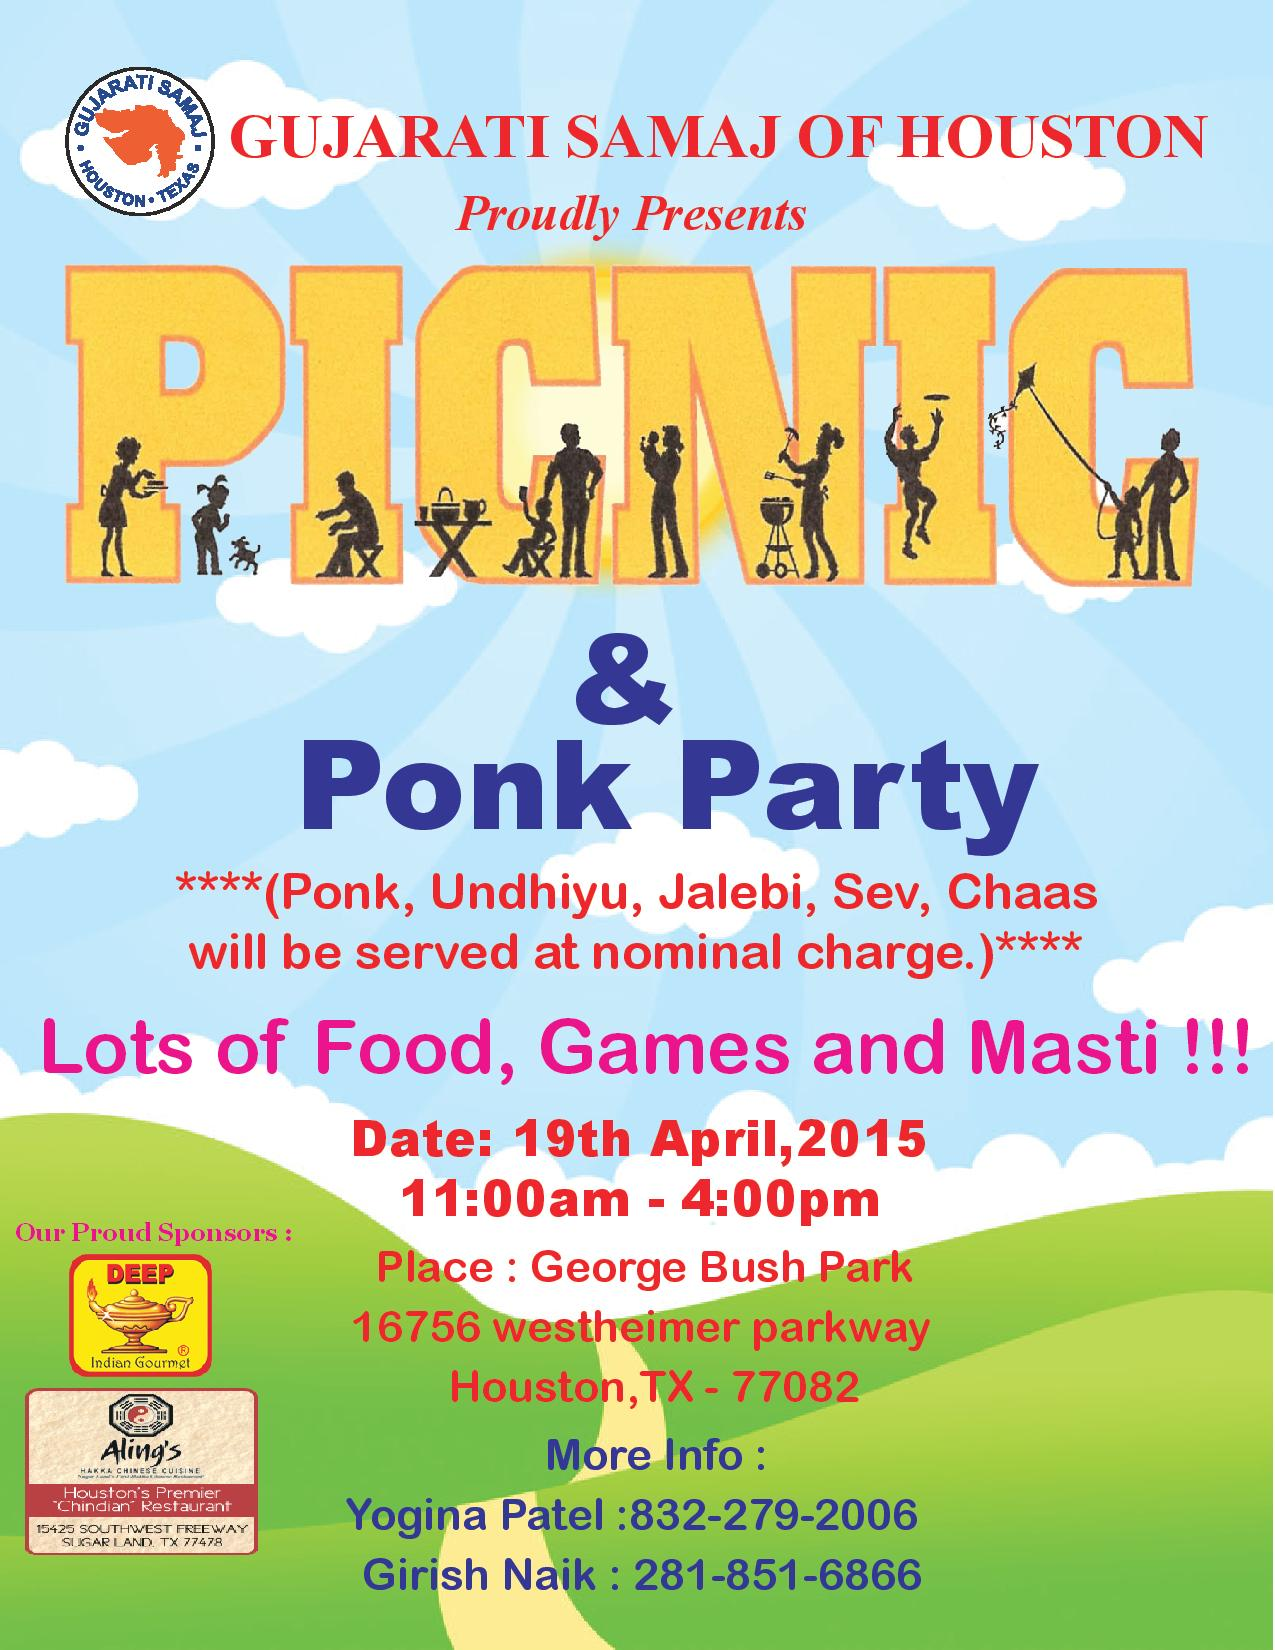 Picnic & Ponk Party